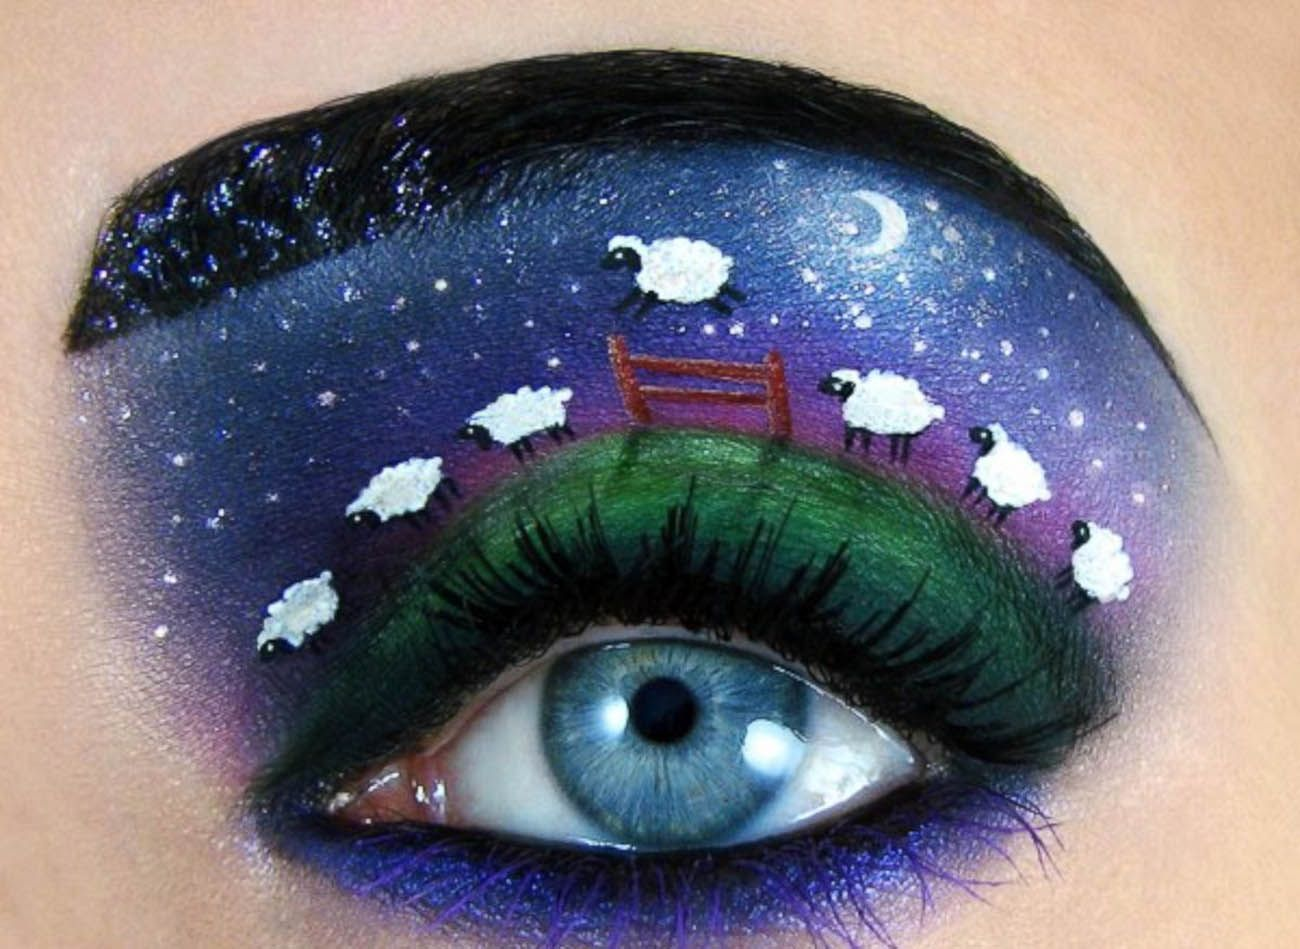 The intricate detail that goes into the work of Israeli makeup artist Tal Peleg is staggering. Fairytale scenes of Moomins and flocks of midnight sheep are minutely painted onto eyelids with a level of complexity and beauty that is truly awe inspiring. They are works of art, they just happen to be on the body.... http://illusion.scene360.com/art/54835/playful-eye-makeup/